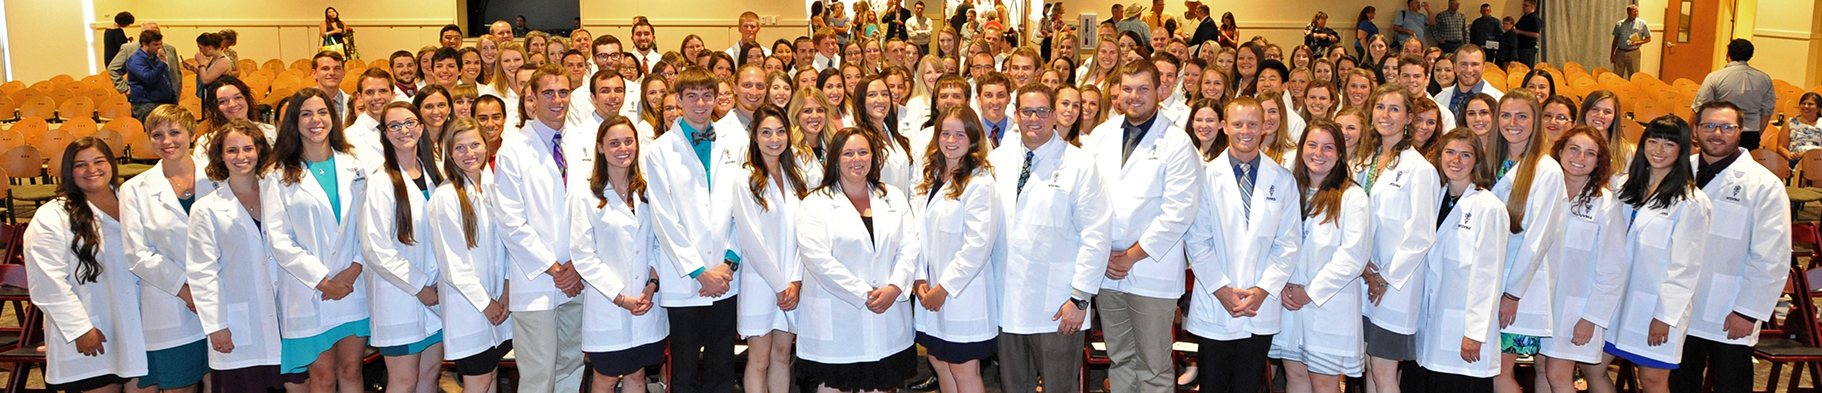 Class of 2021 White Coat Group Photo